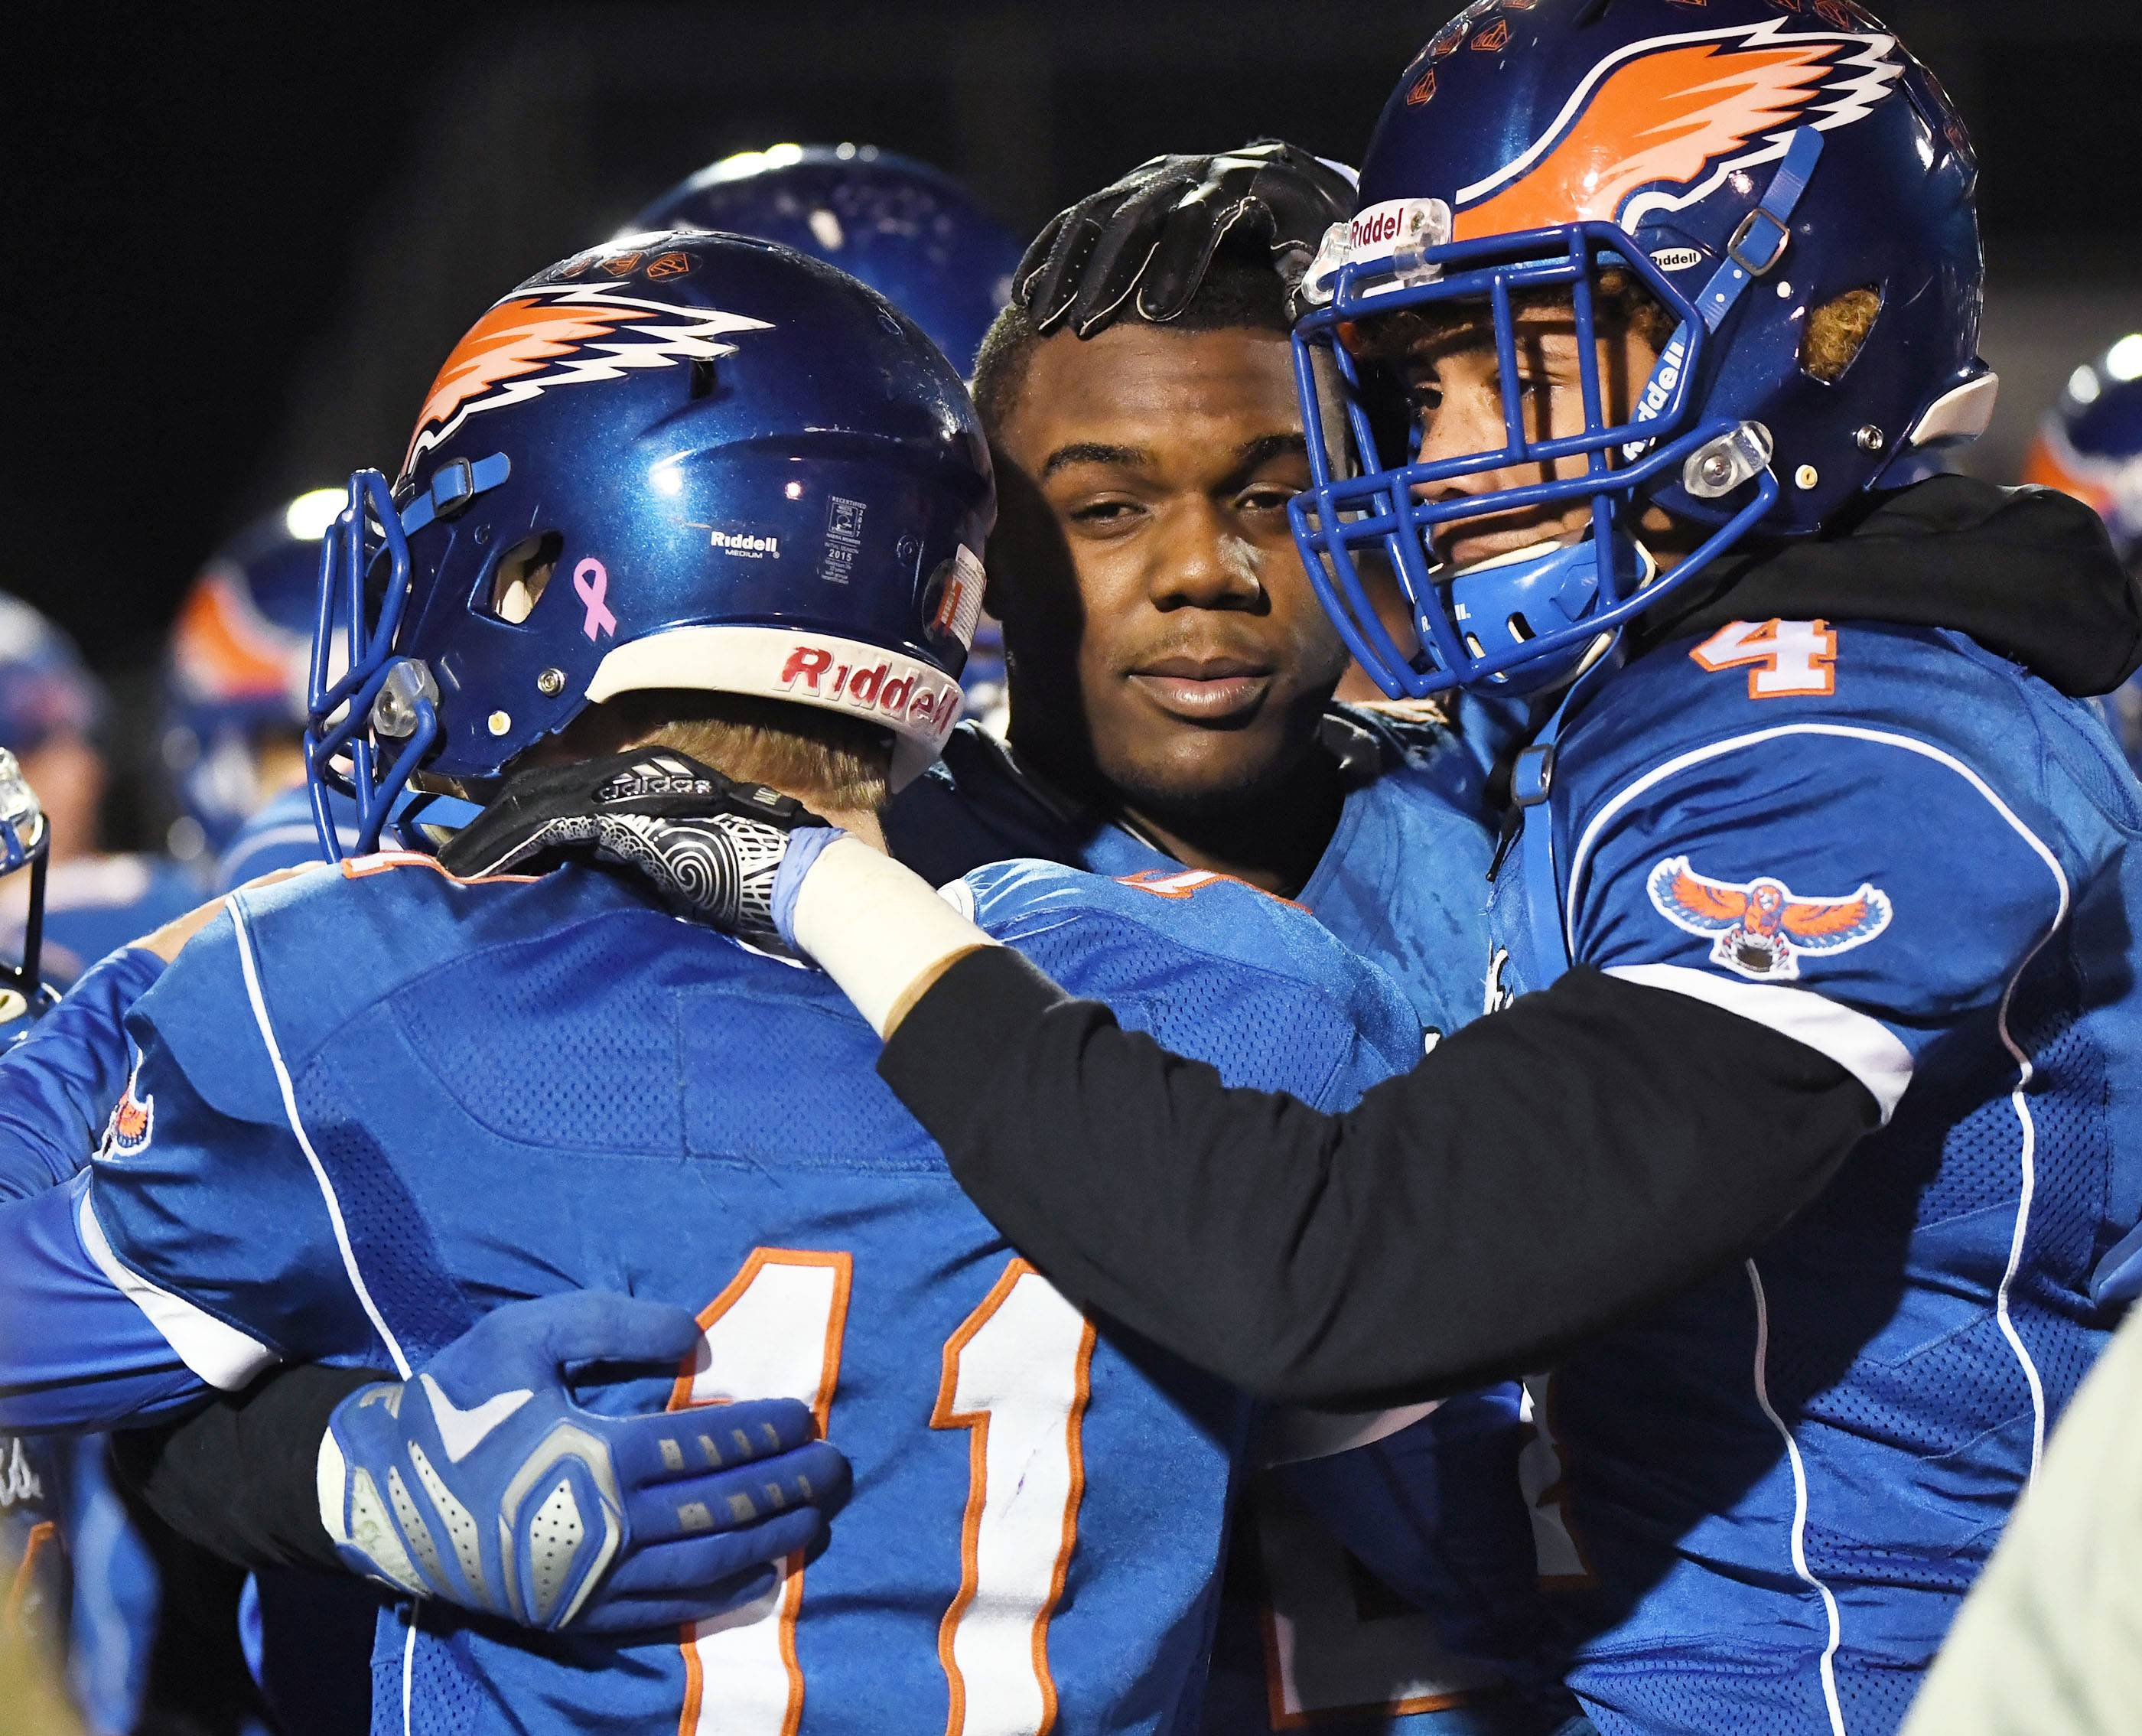 Hoffman Estates' Austin Coalson, Jaylan Alexander and Jayvon Blissett, right, hug it out after falling short against visiting Prairie Ridge on Saturday in the Class 6A state semifinals.